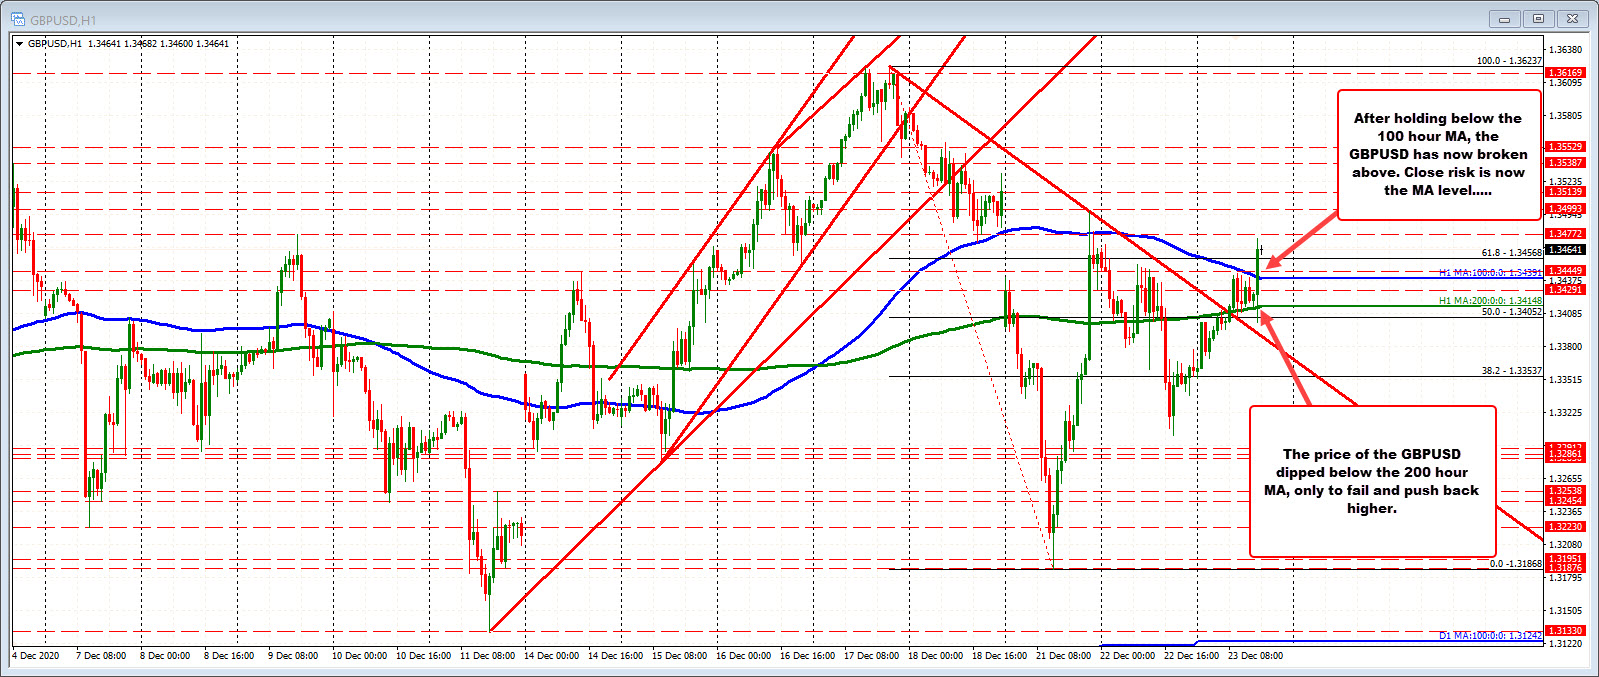 Photo of GBPUSD Rises Above 100 Hour MA